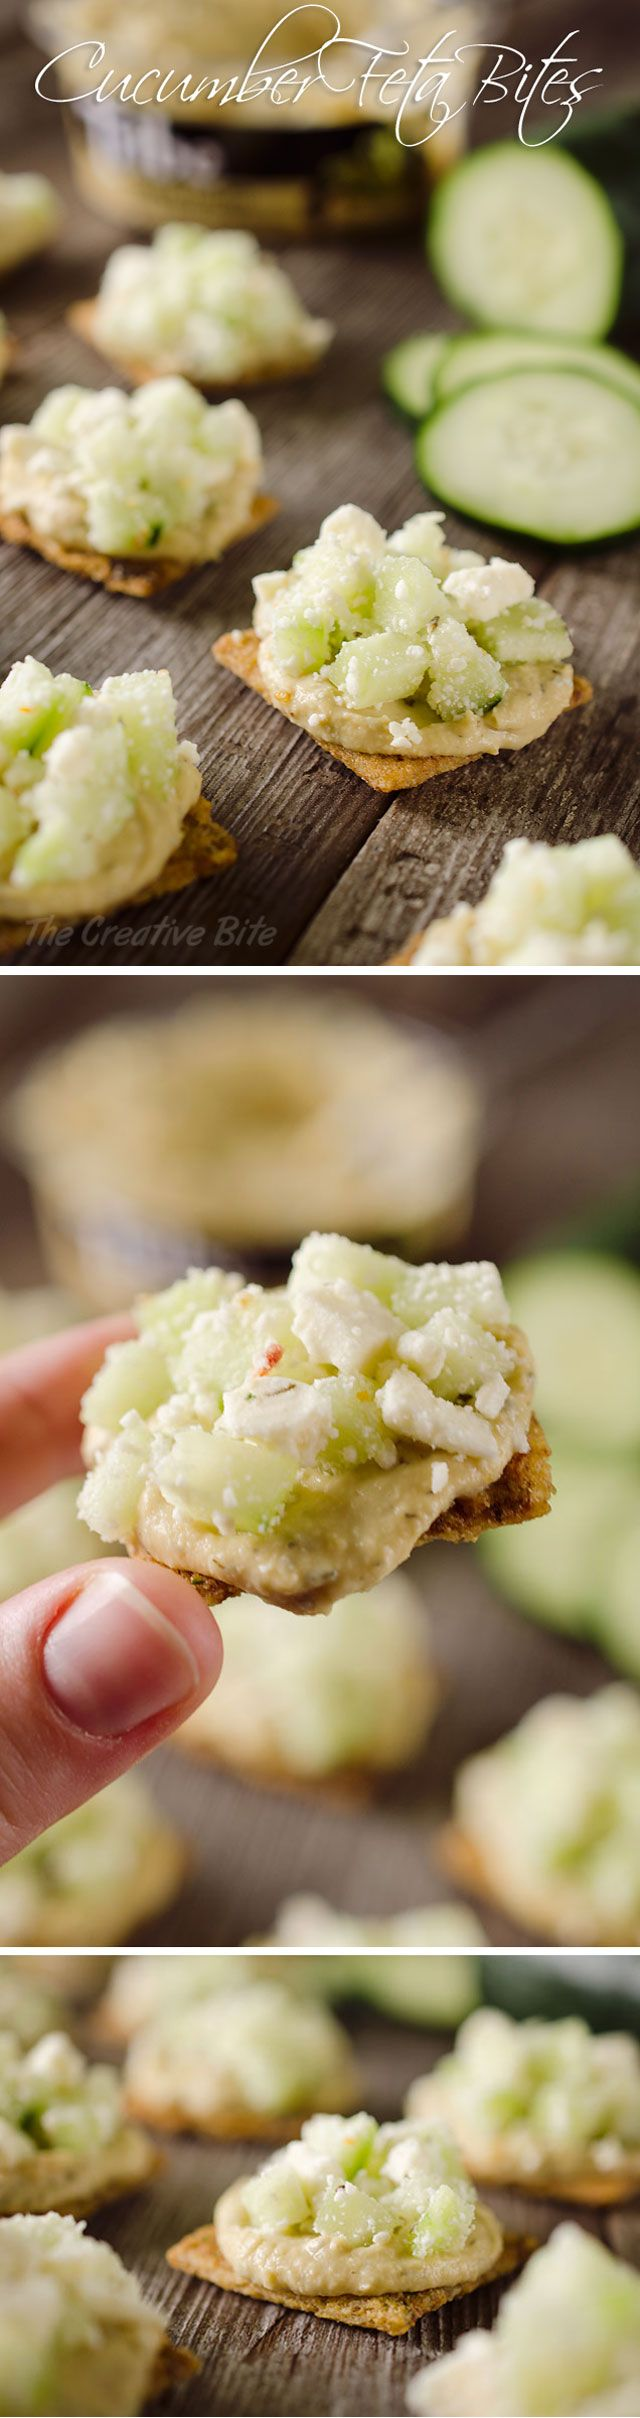 Cucumber Feta Bites are an easy appetizer or snack that are not only healthy, but satisfying and delicious!